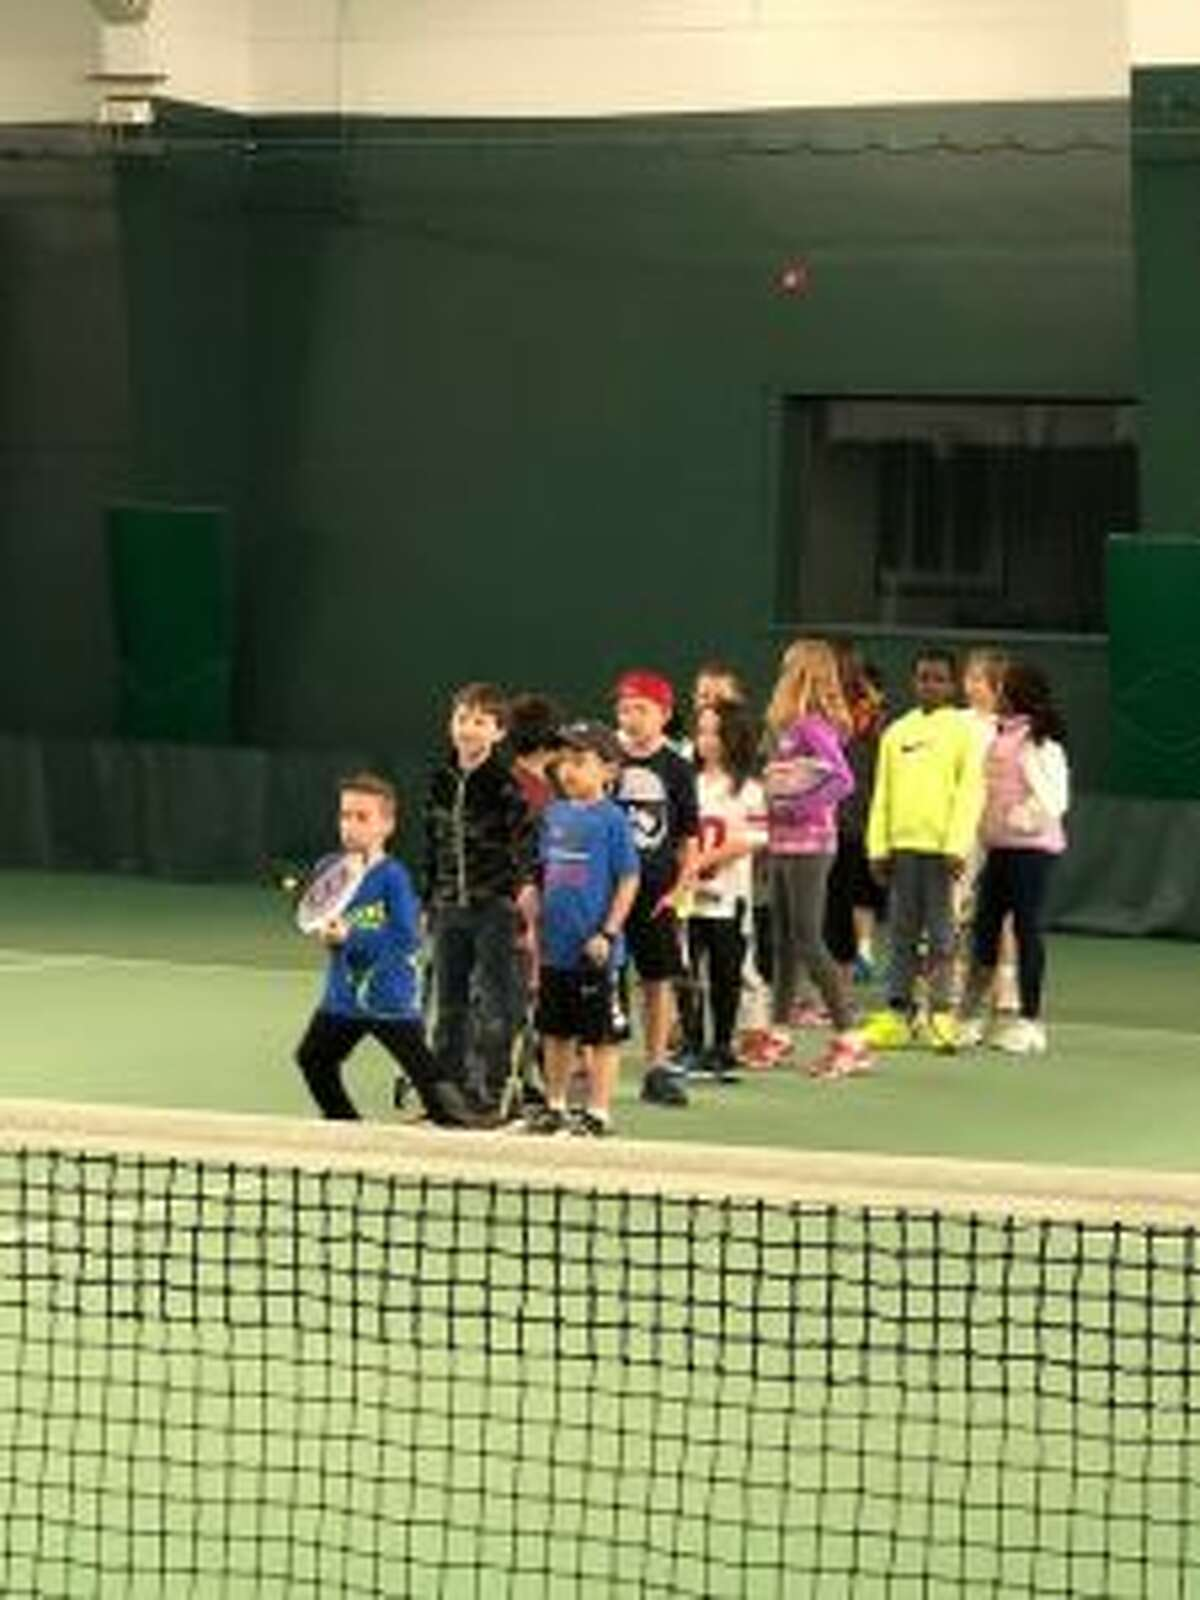 New Canaan: Pros recently competed, and kids played tennis for local charities. Kids play an interactive game at the charity tennis event. - Contributed photo